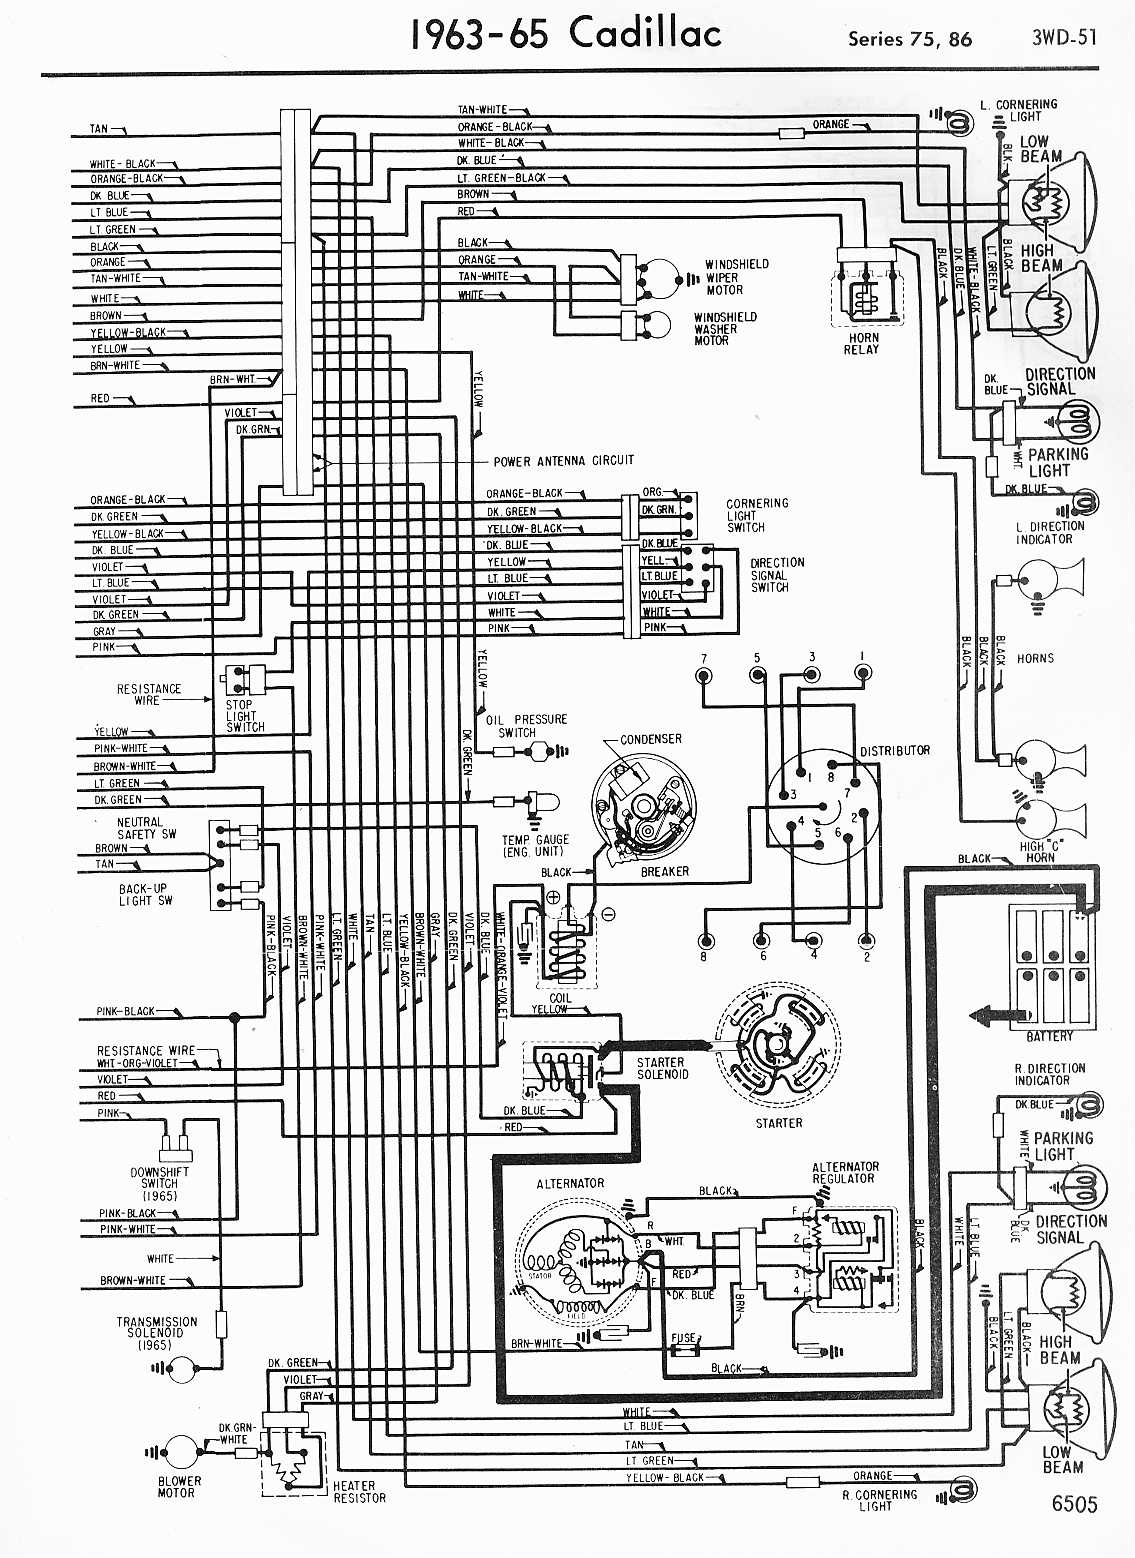 MWireCadi65_3WD 051 cadillac wiring harness ram truck wiring harness \u2022 wiring diagrams 1999 cadillac deville engine wiring harness at edmiracle.co